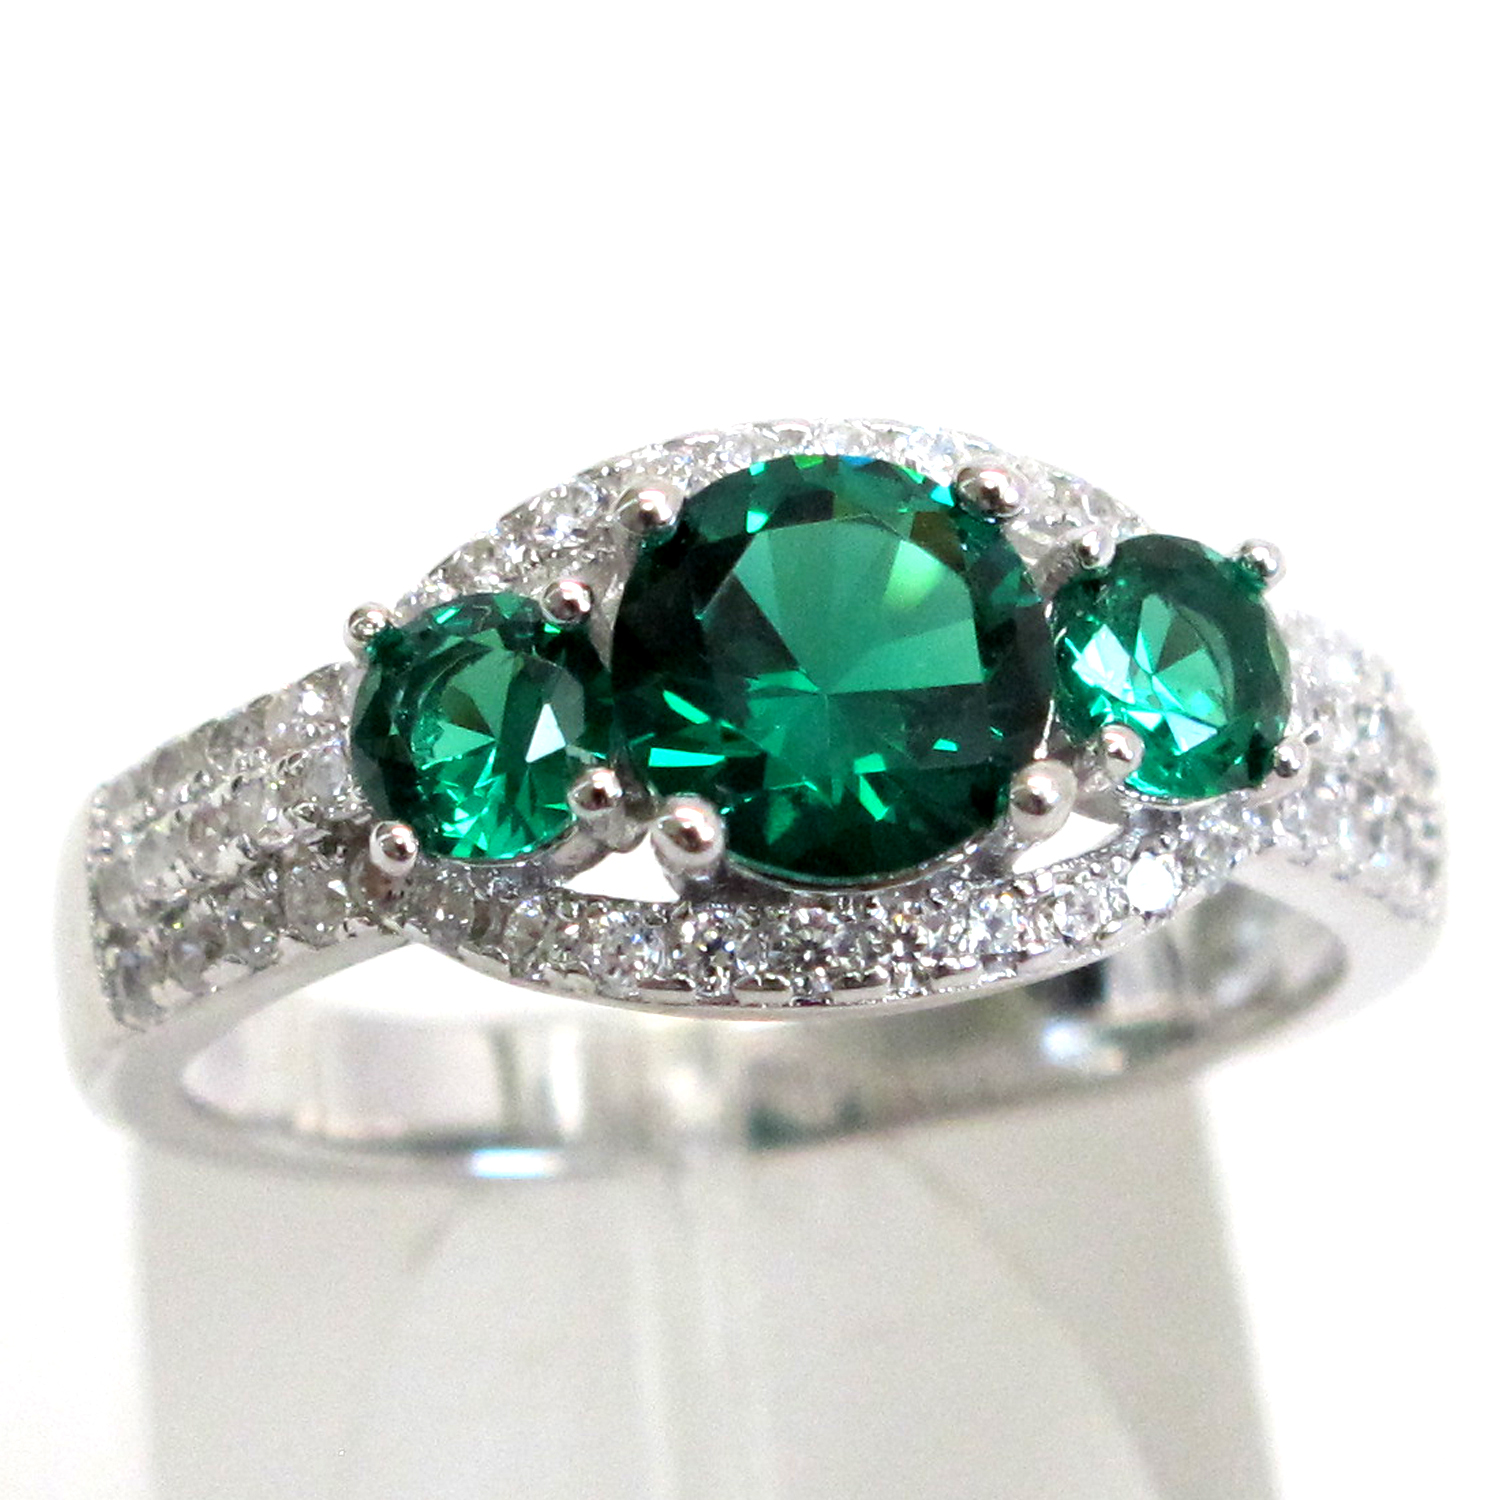 AWESOME 4 CT THREE STONE EMERALD 925 STERLING SILVER RING SIZE 5-10